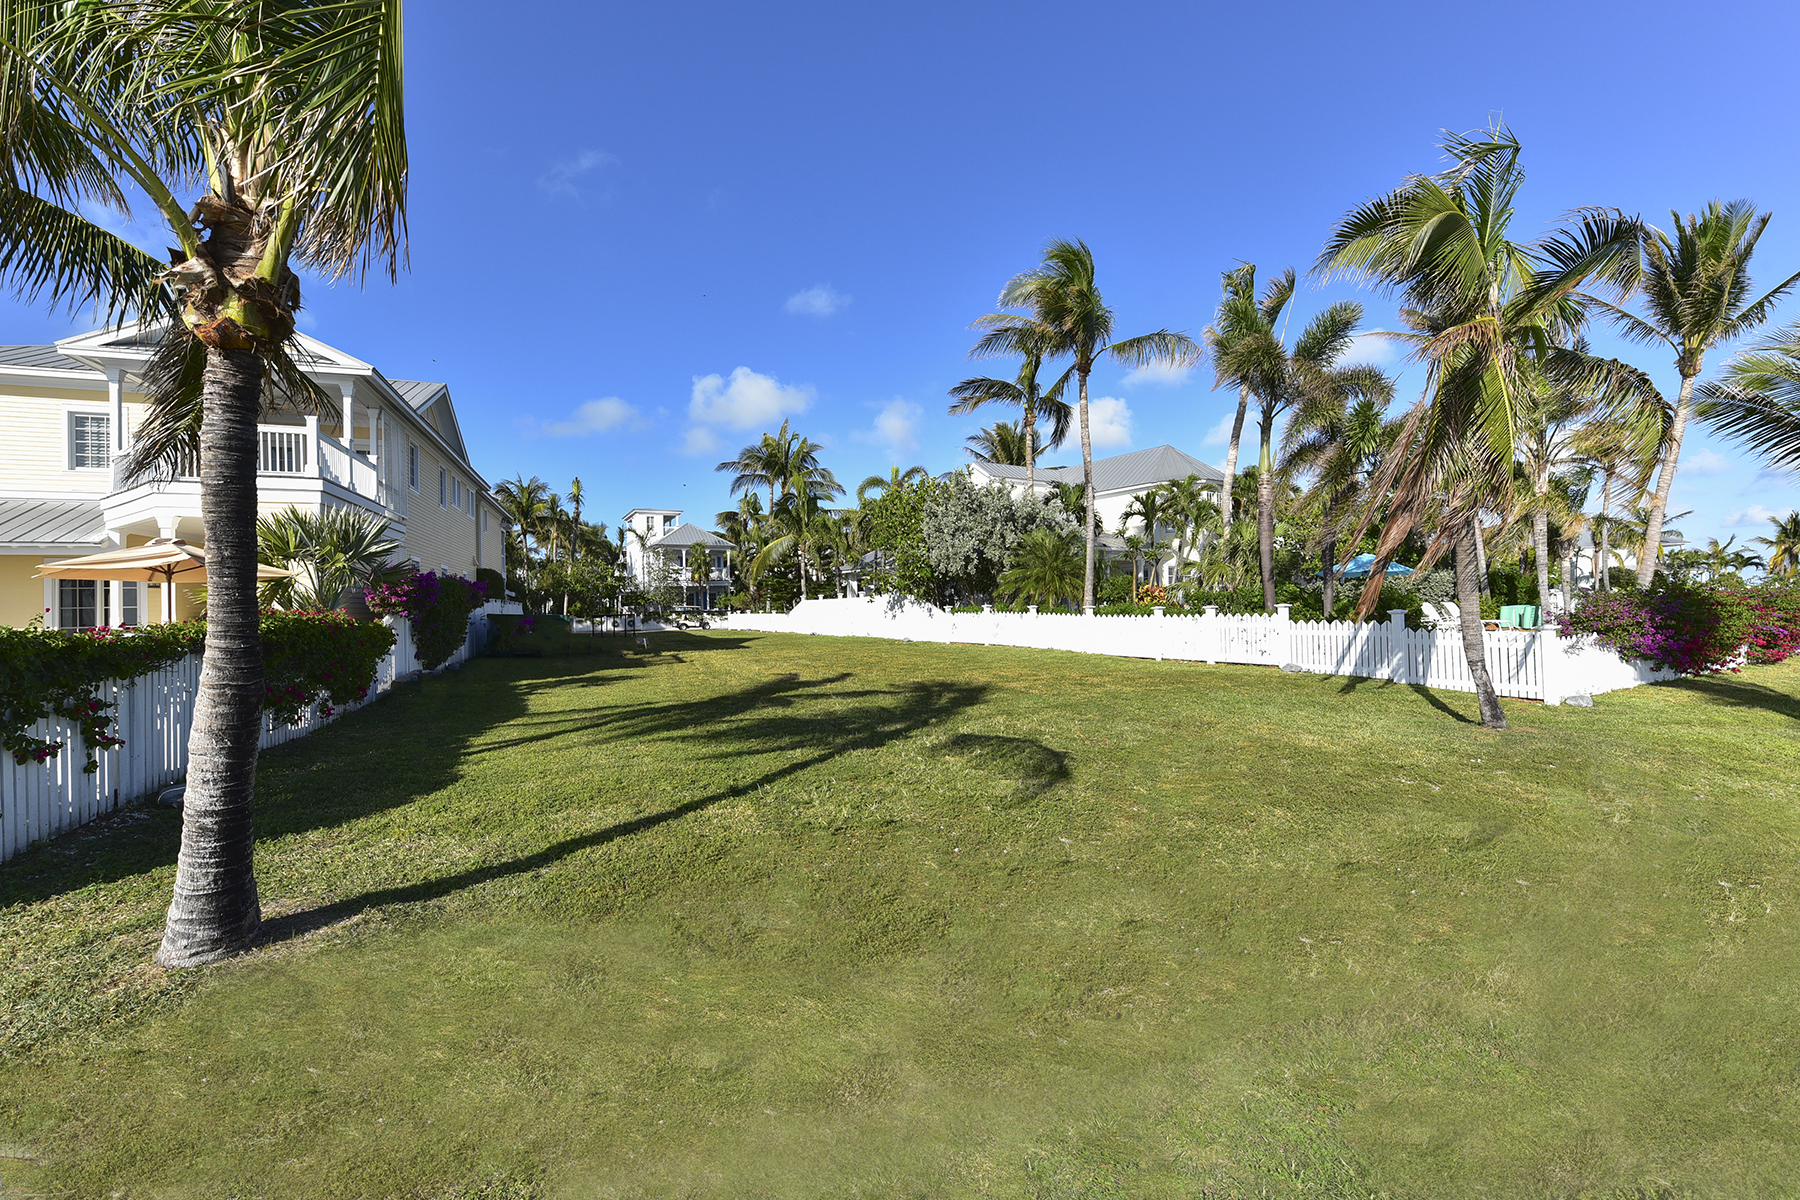 Terreno por un Venta en Oceanfront Lot Ready to Build Your Dream Home 24 Sunset Key Drive Key West, Florida 33040 Estados Unidos